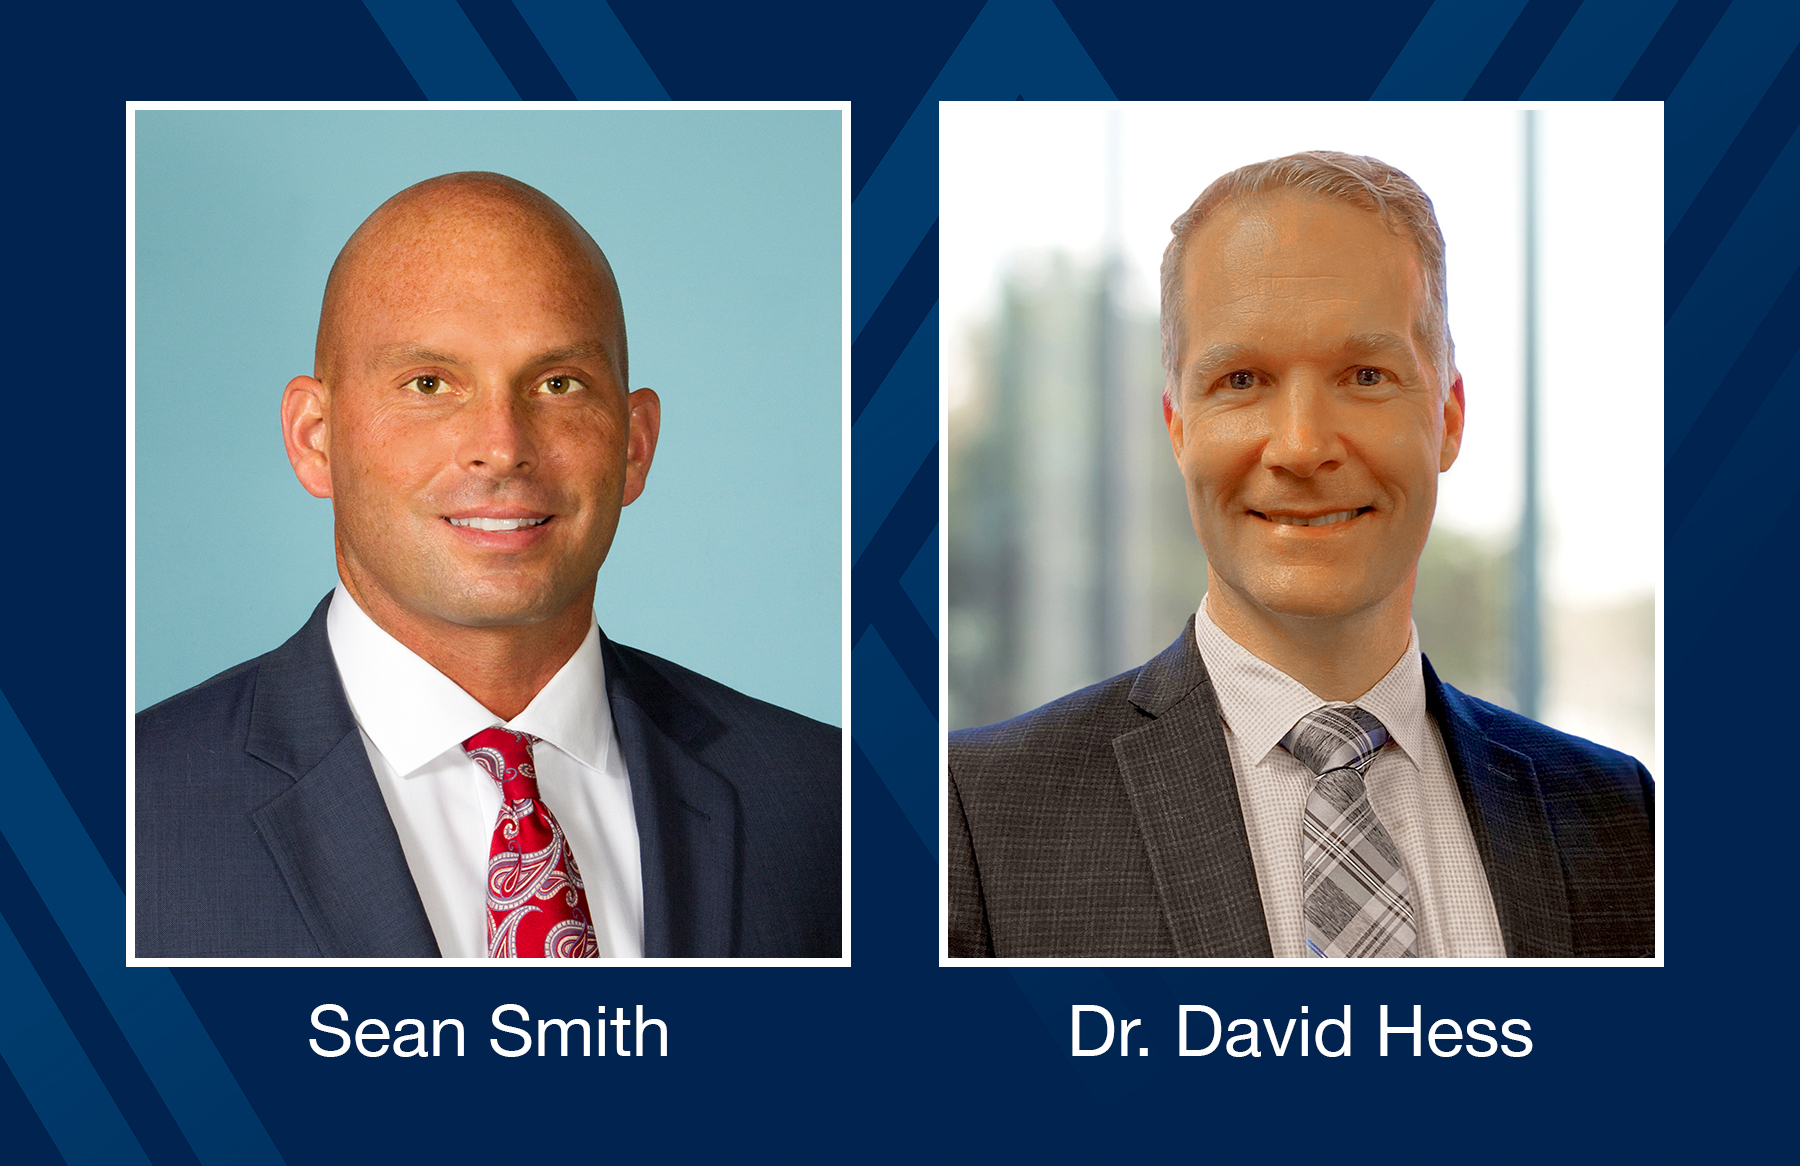 Sean Smith and David Hess, M.D.